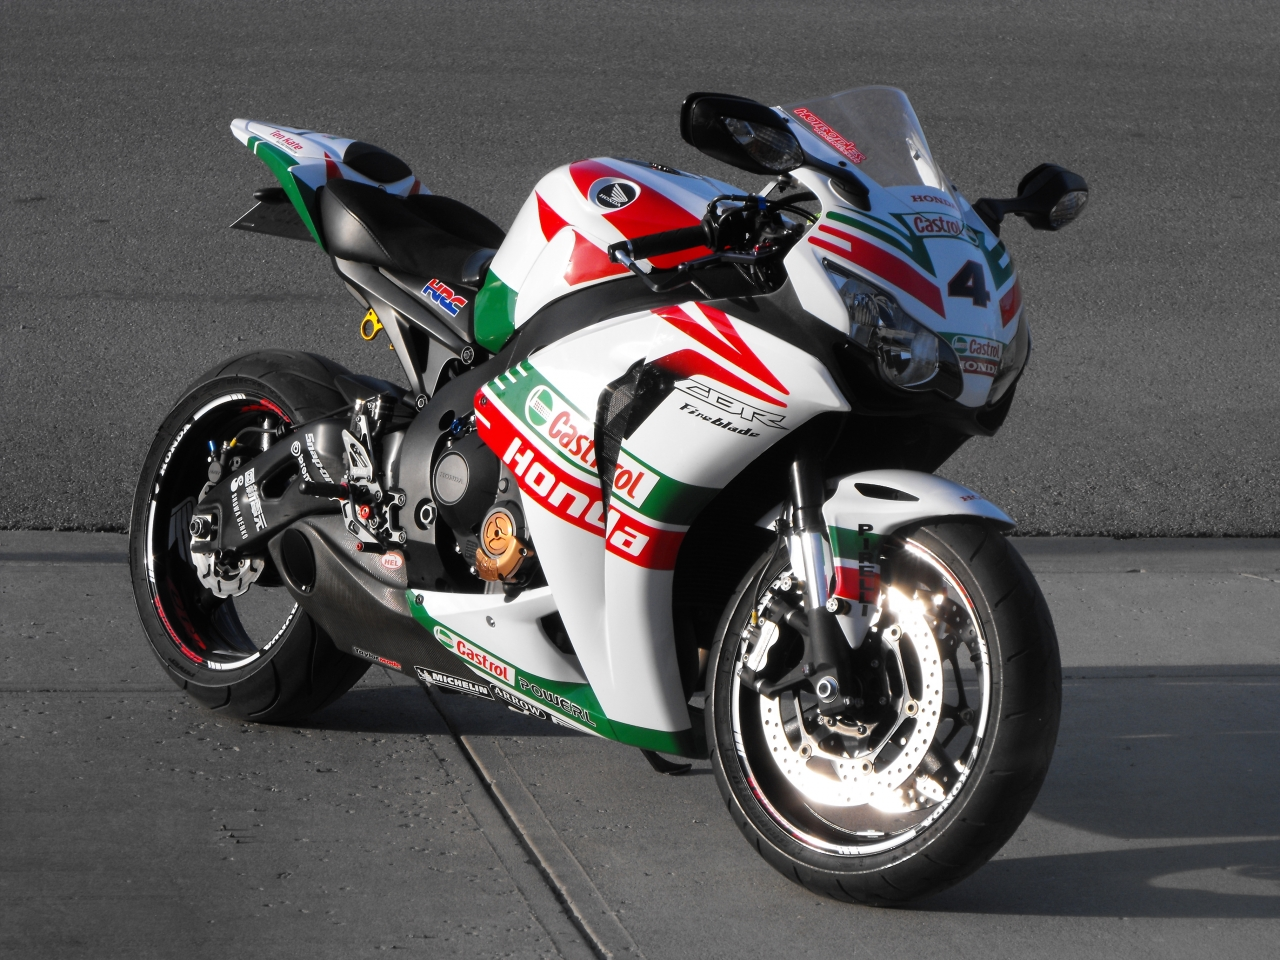 Photo Quot 3099 Quot In The Album Quot Castrol Cbr 1000rr Fireblade